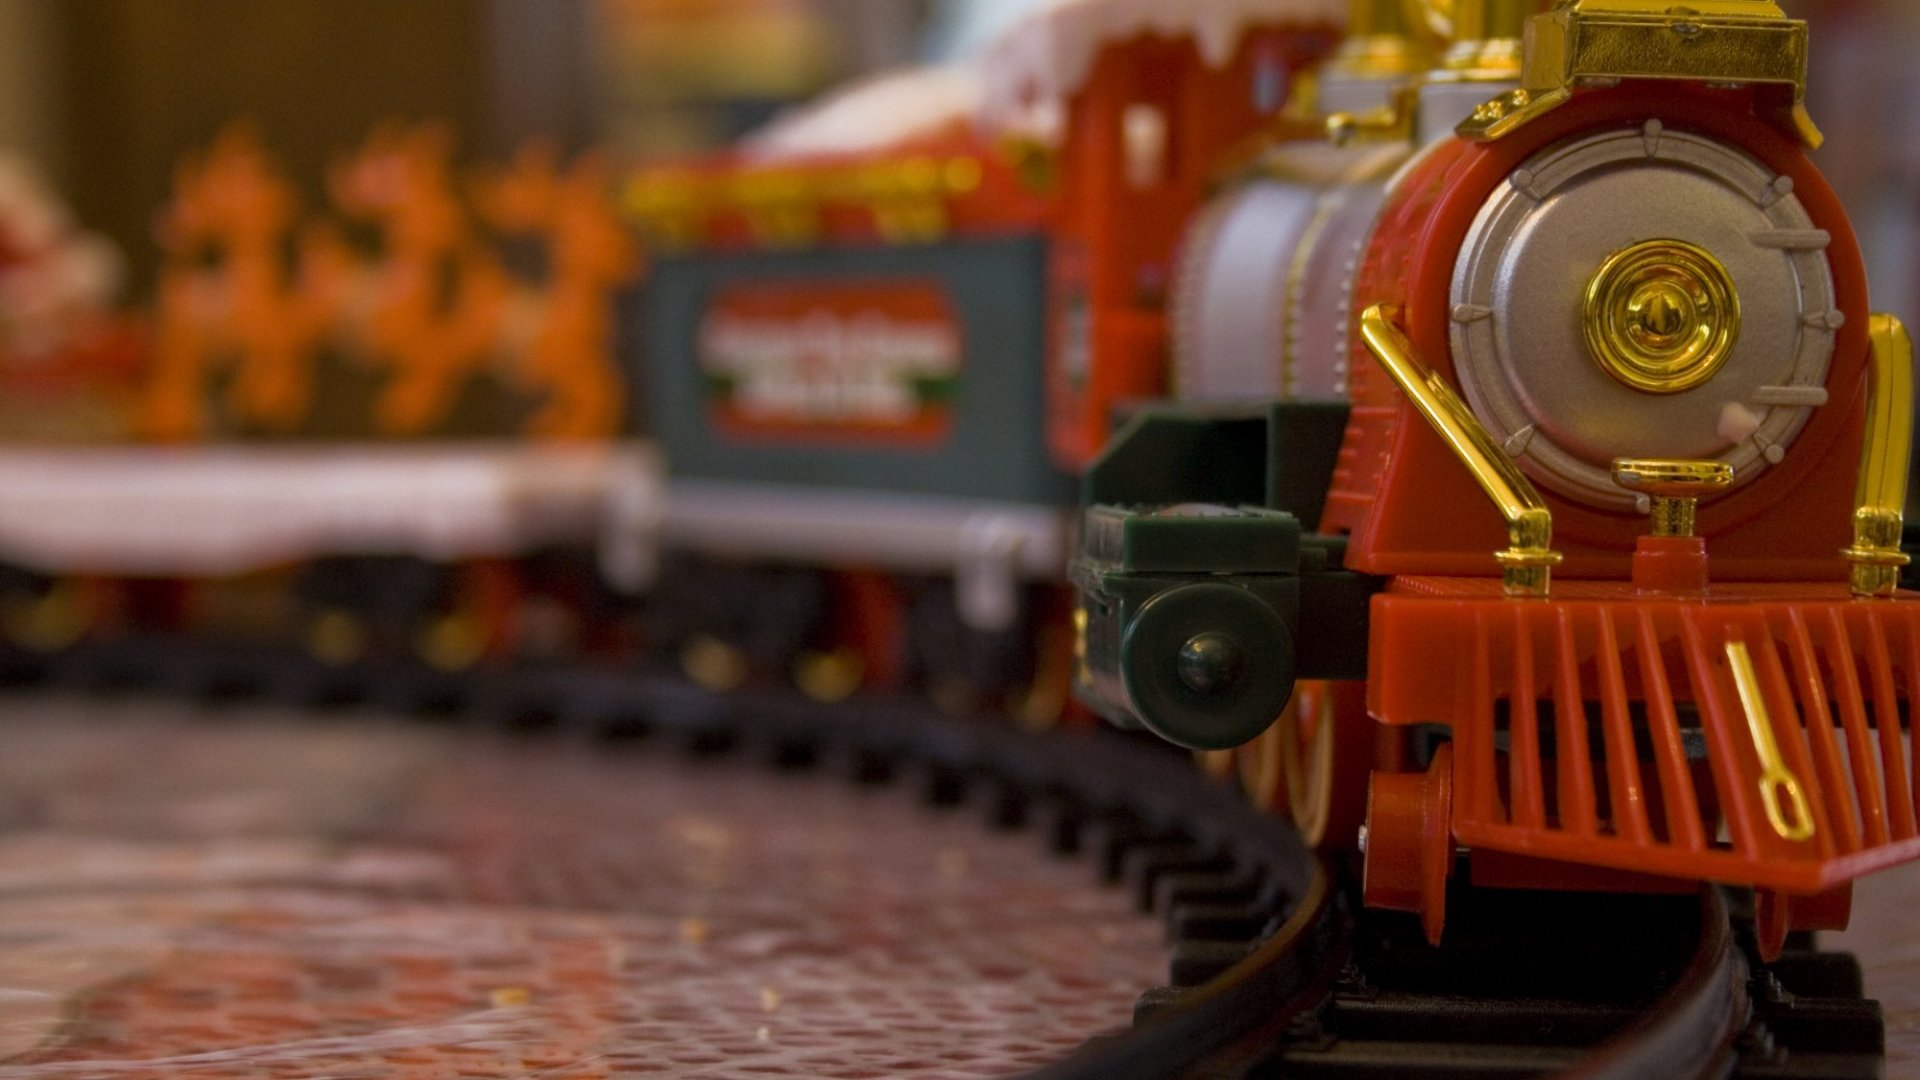 If You Like Model Trains, Now Is the Best Time to Buy